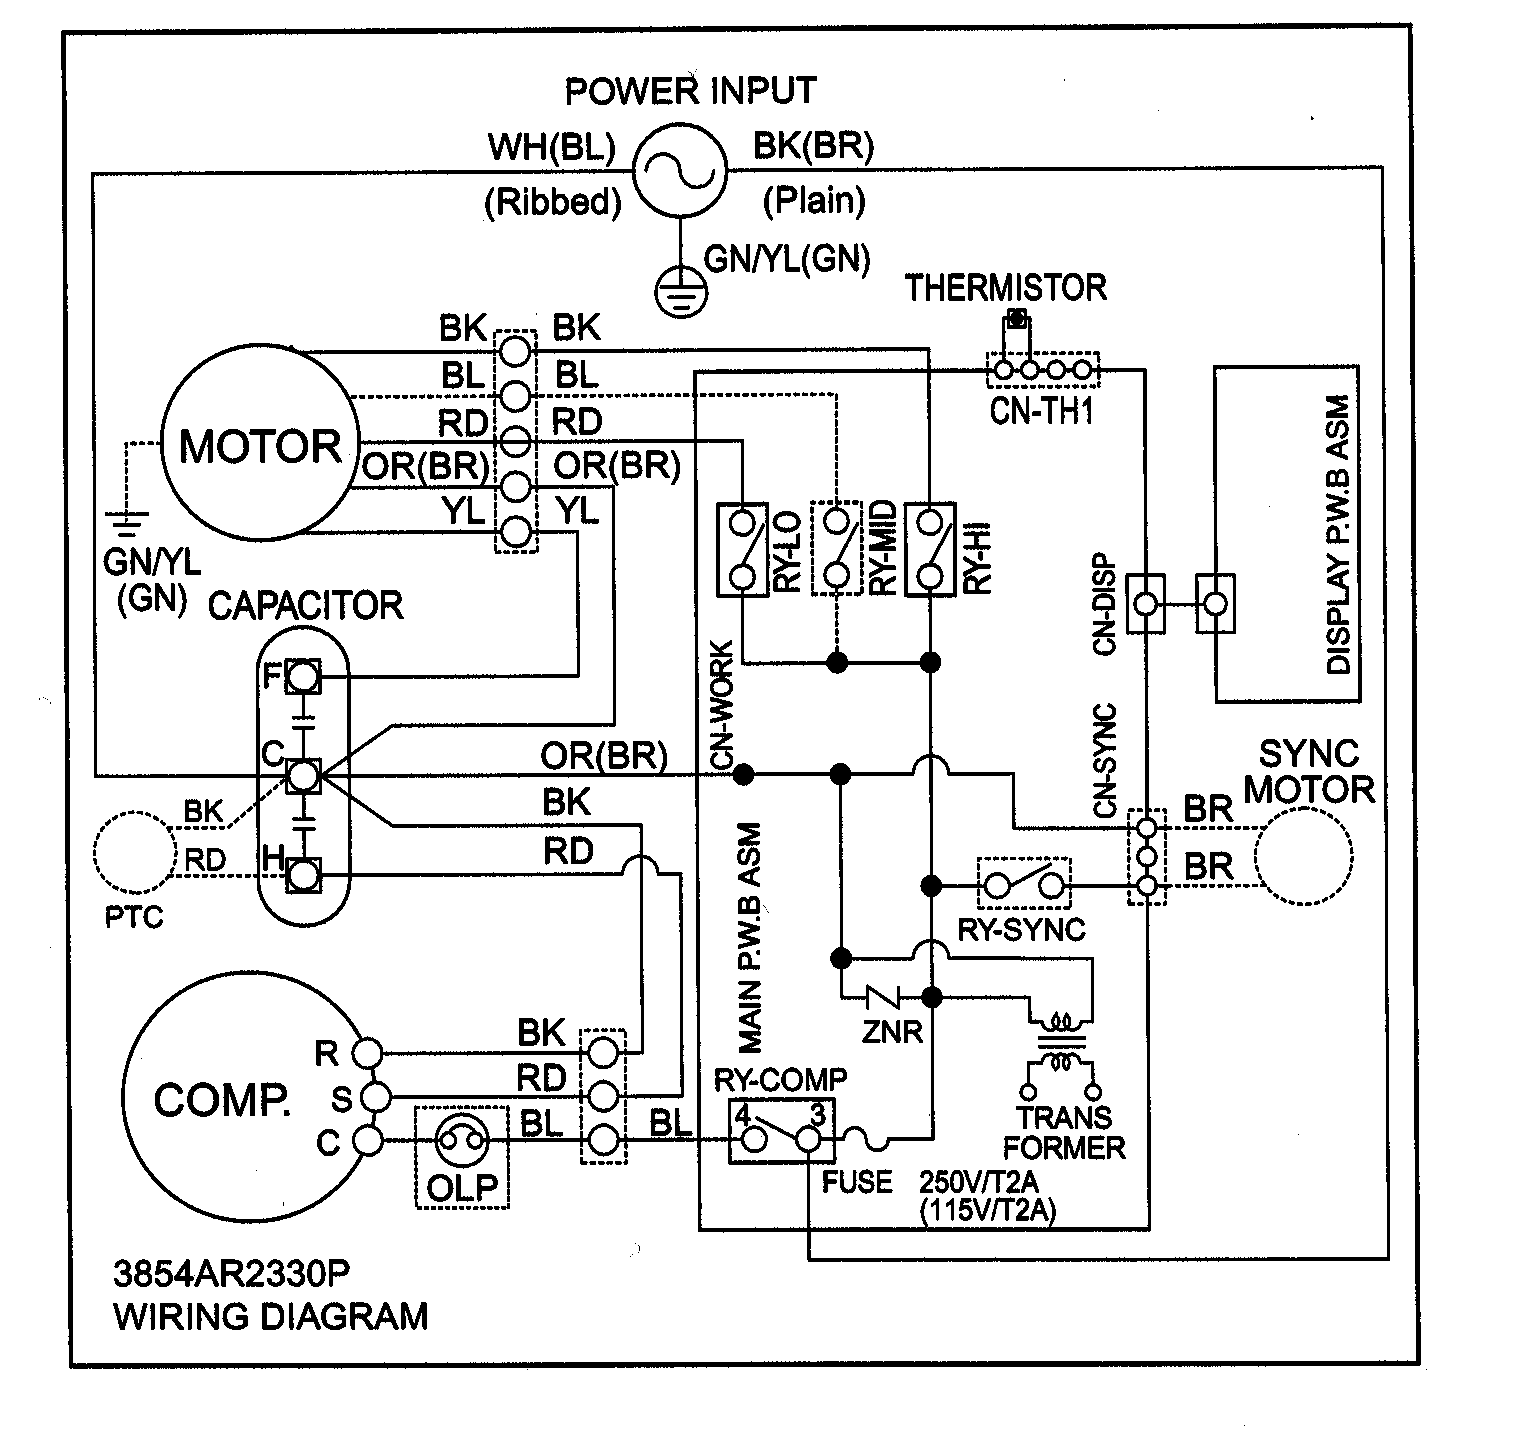 Carrier Start Capacitor Wiring Diagram in 2021 | Electrical circuit diagram,  Ac wiring, Circuit diagram | Hvac Wiring Schematics Diagrams And Made Easy |  | Pinterest